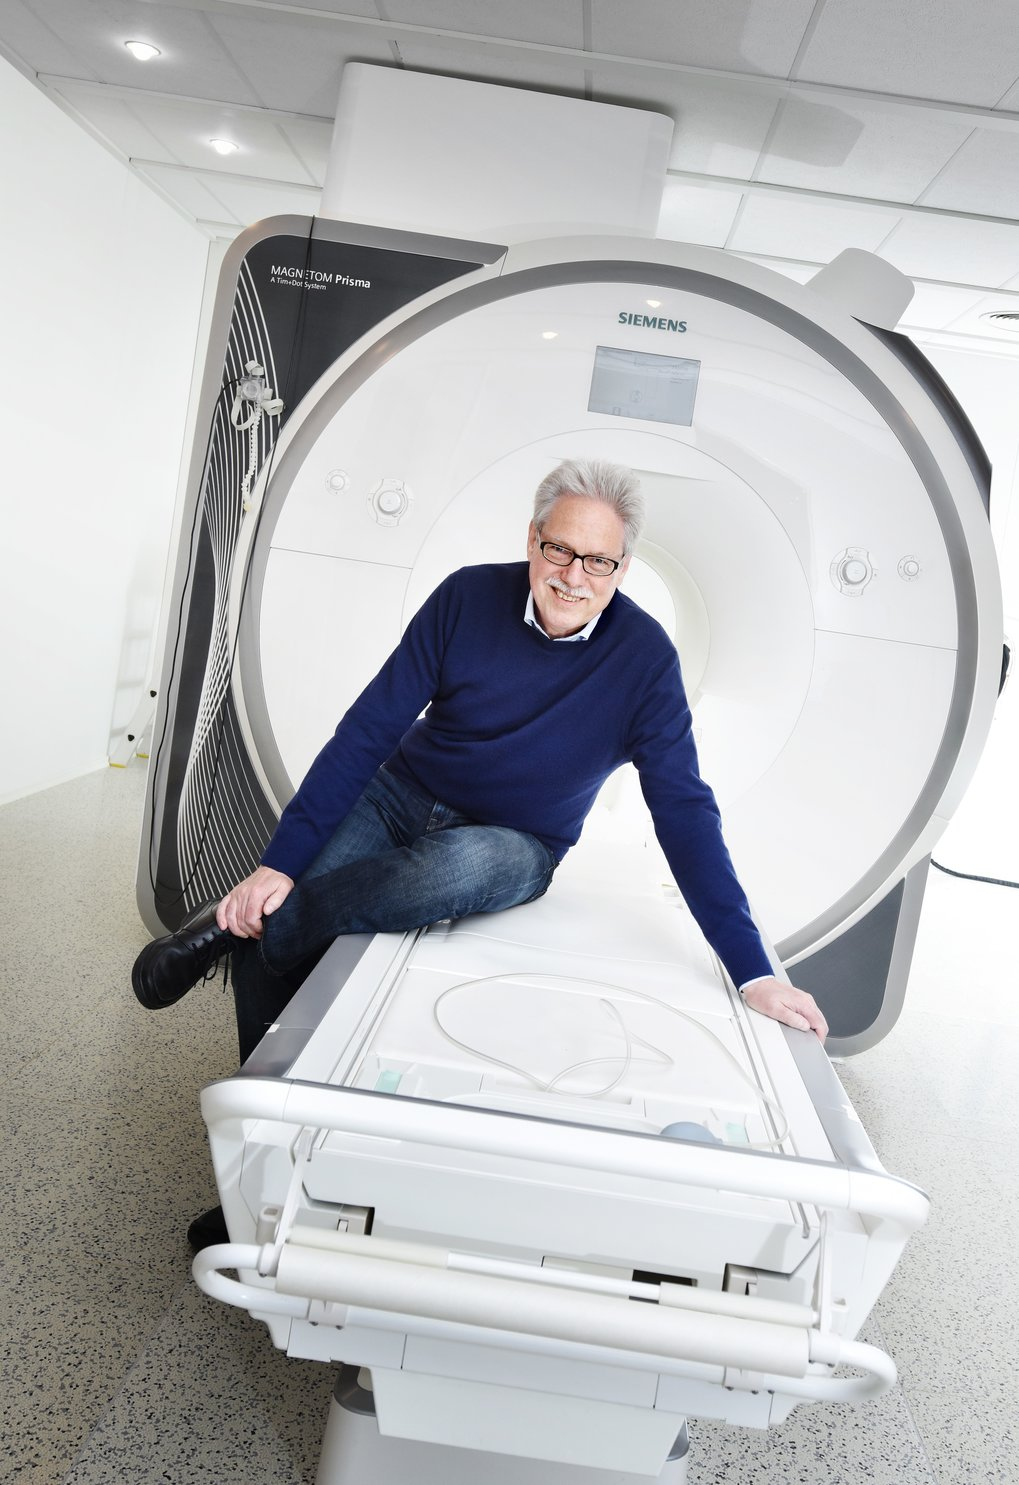 European Inventor Award for fast MRI in medical diagnostics